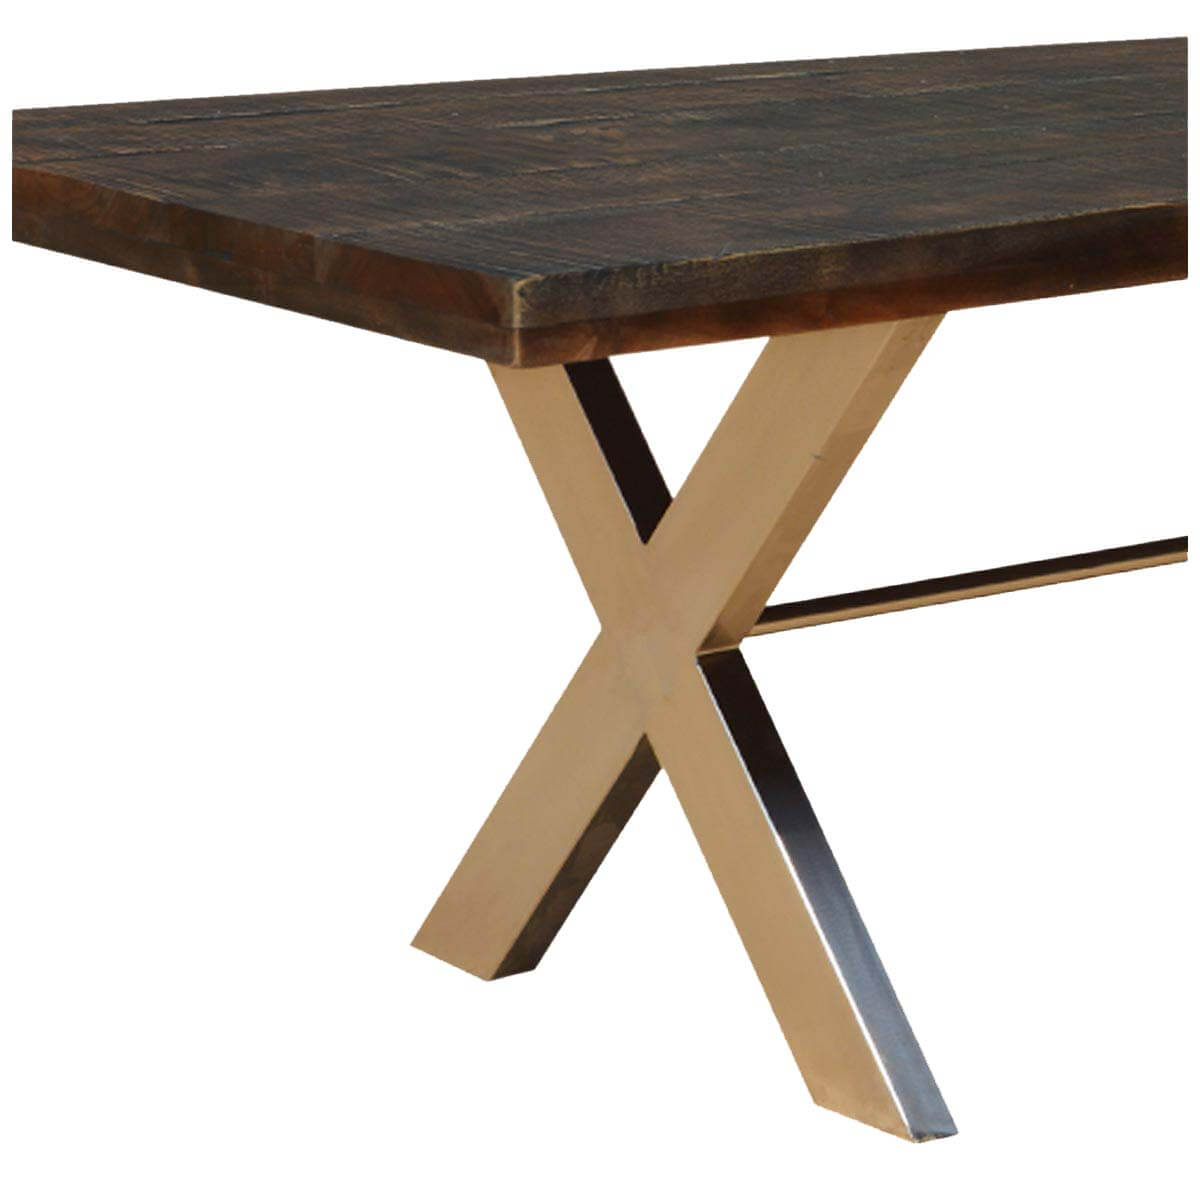 Mckay 88 rustic wood hankin industrial iron x legs dining for Rustic iron table legs